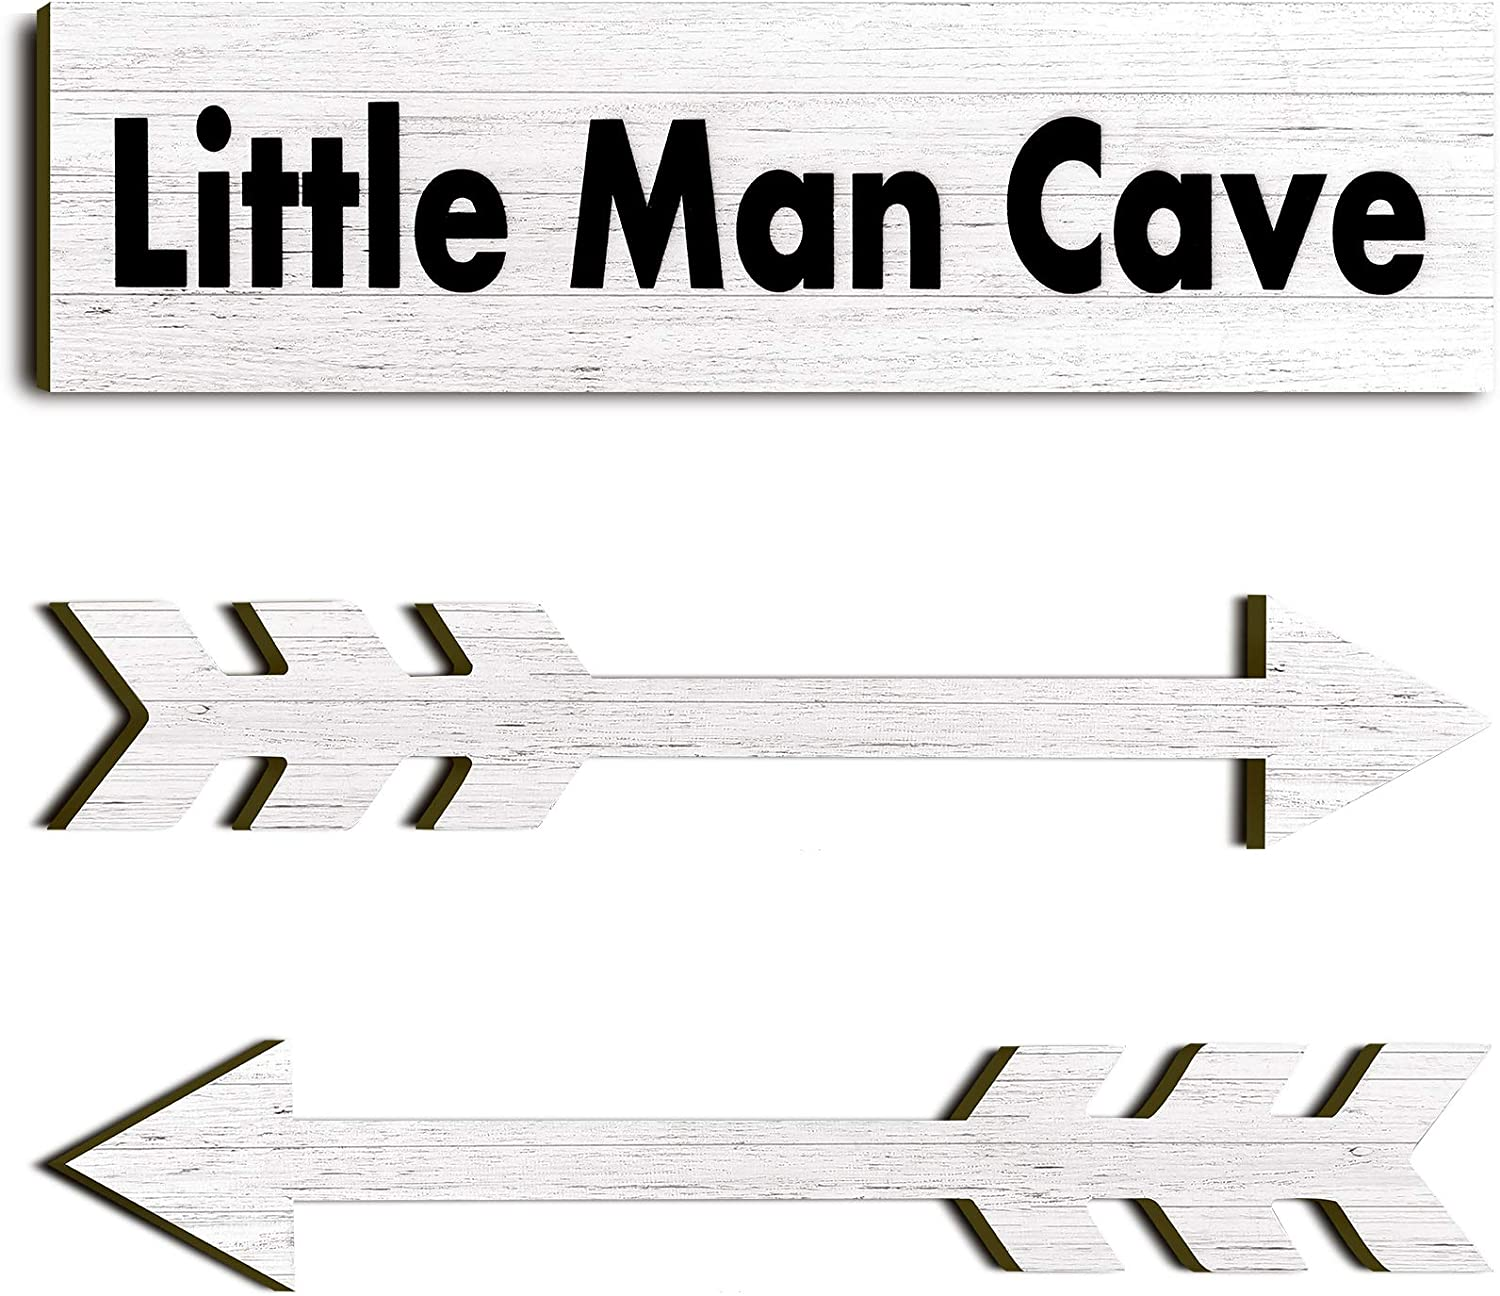 3 Pieces Little Man Cave Wood Sign Decor Toddler Boys Room Wood Wall Art Sign 15 x 4 x 0.2 Rustic Boys Nursery Wall Sign Decor Farmhouse Wooden Arrow Sign for Baby Home Bedroom Living Room (White)